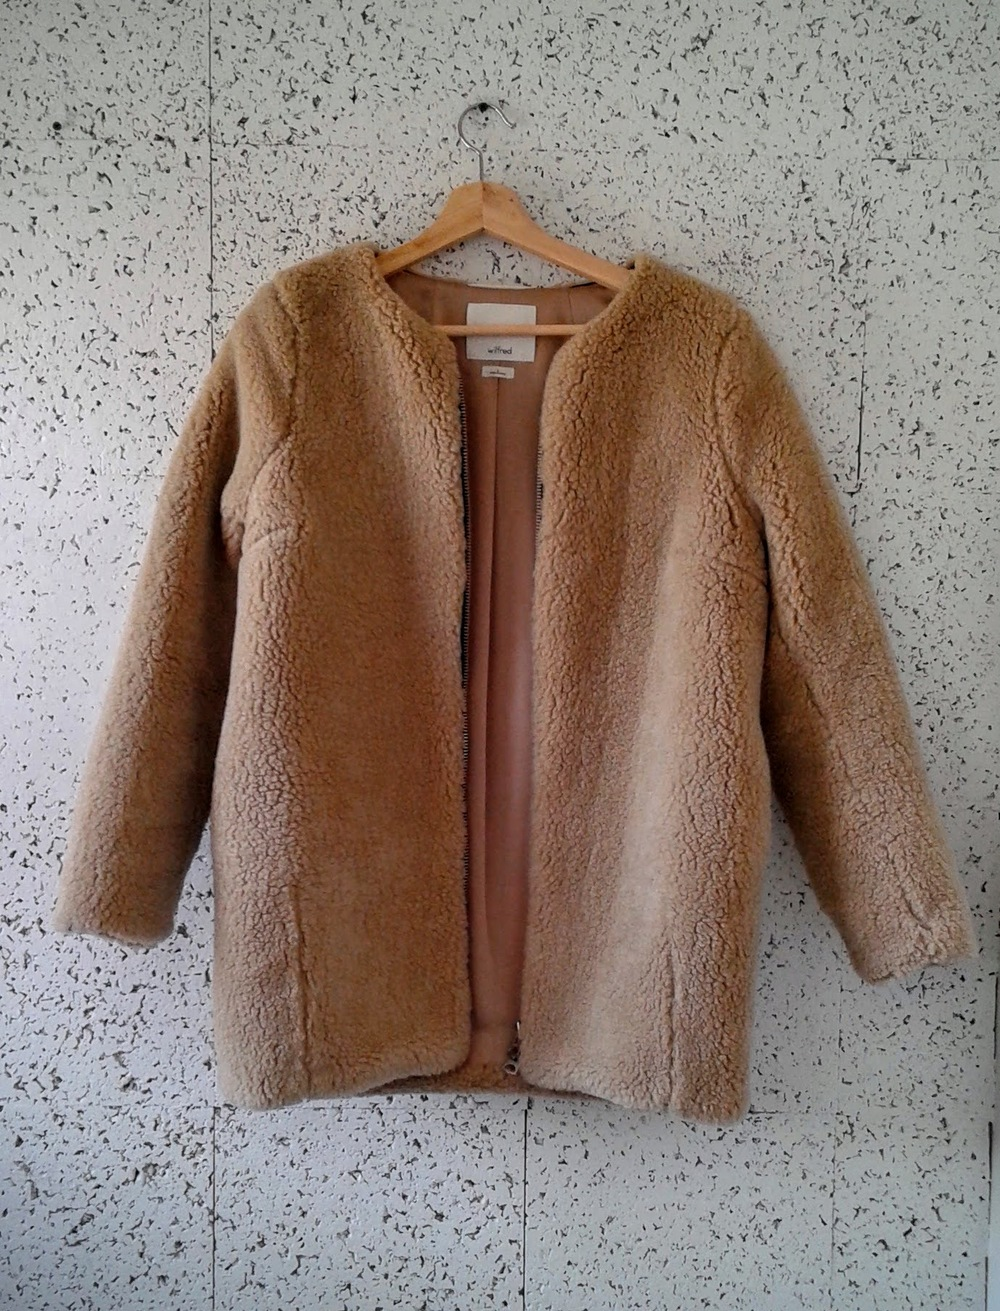 Wilfred coat; Size S, $58